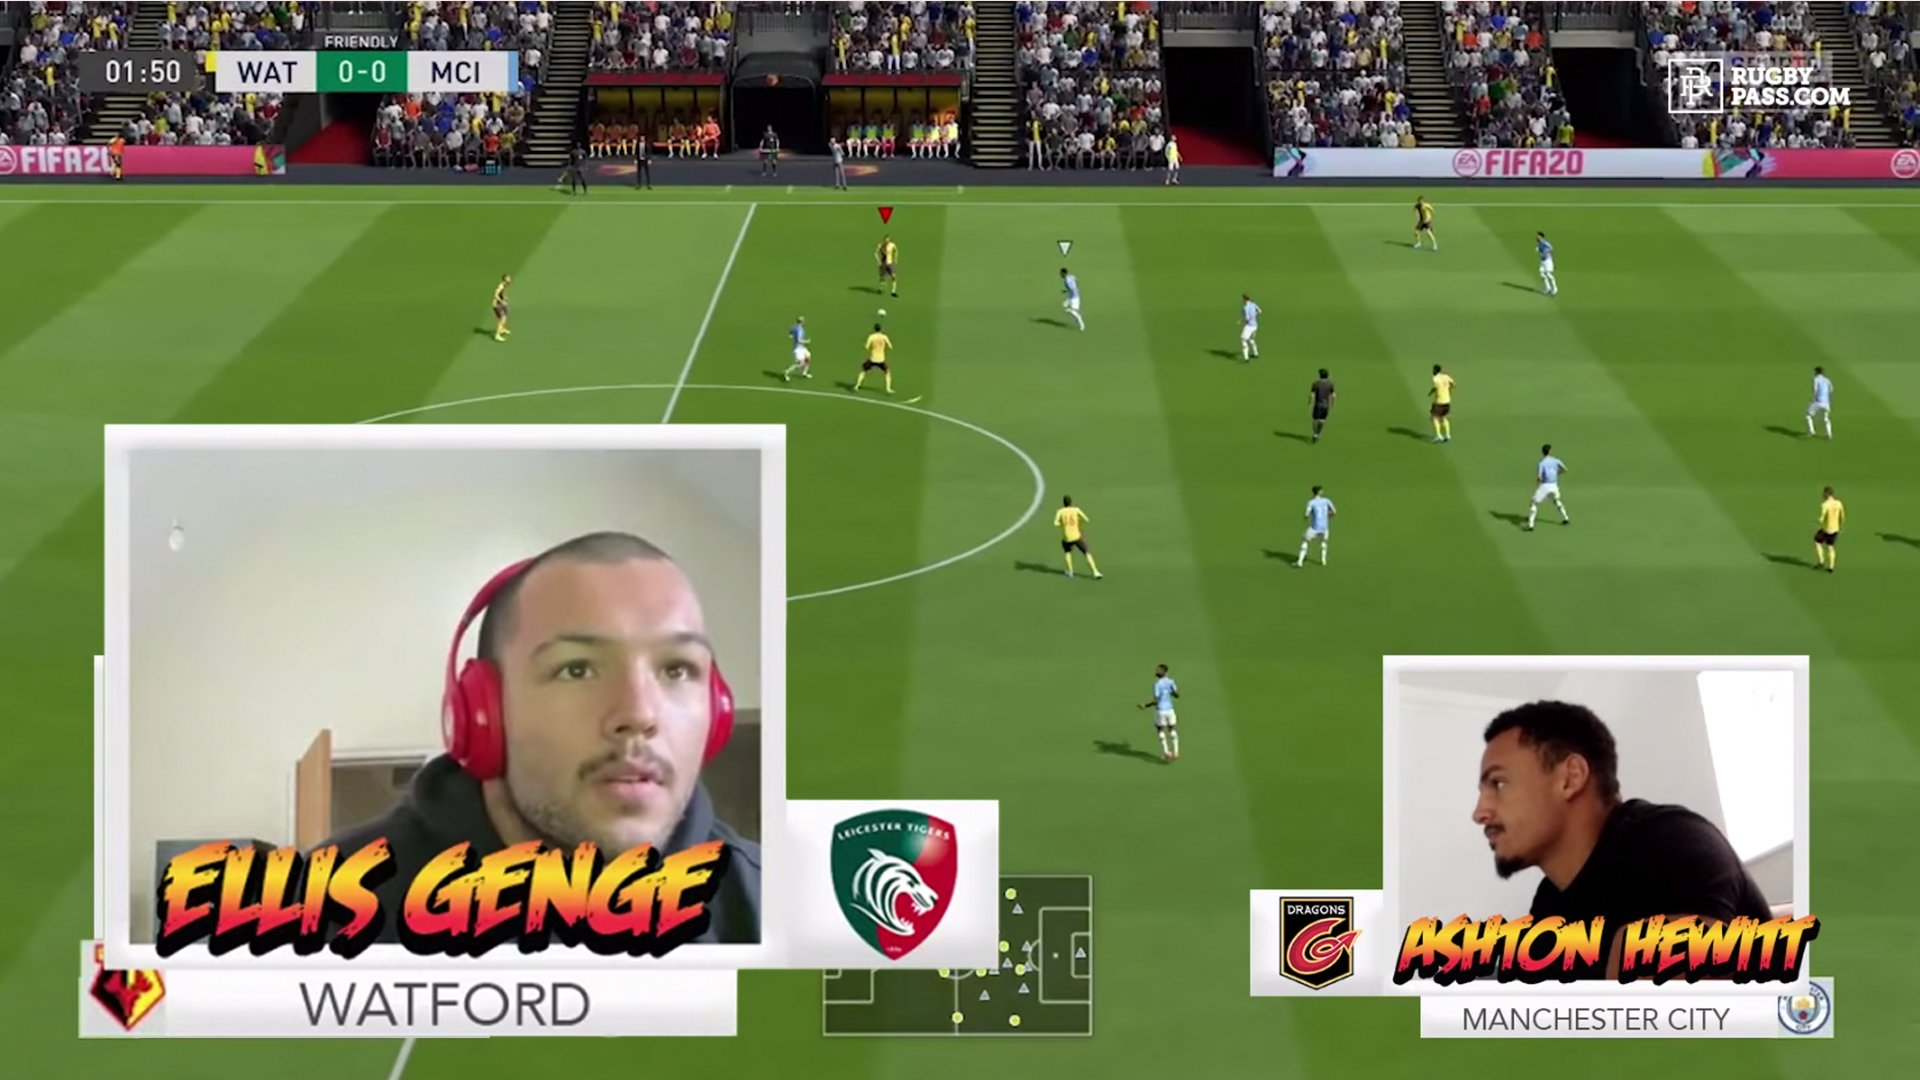 So it turns out rugby star Ellis Genge is really REALLY good at FIFA